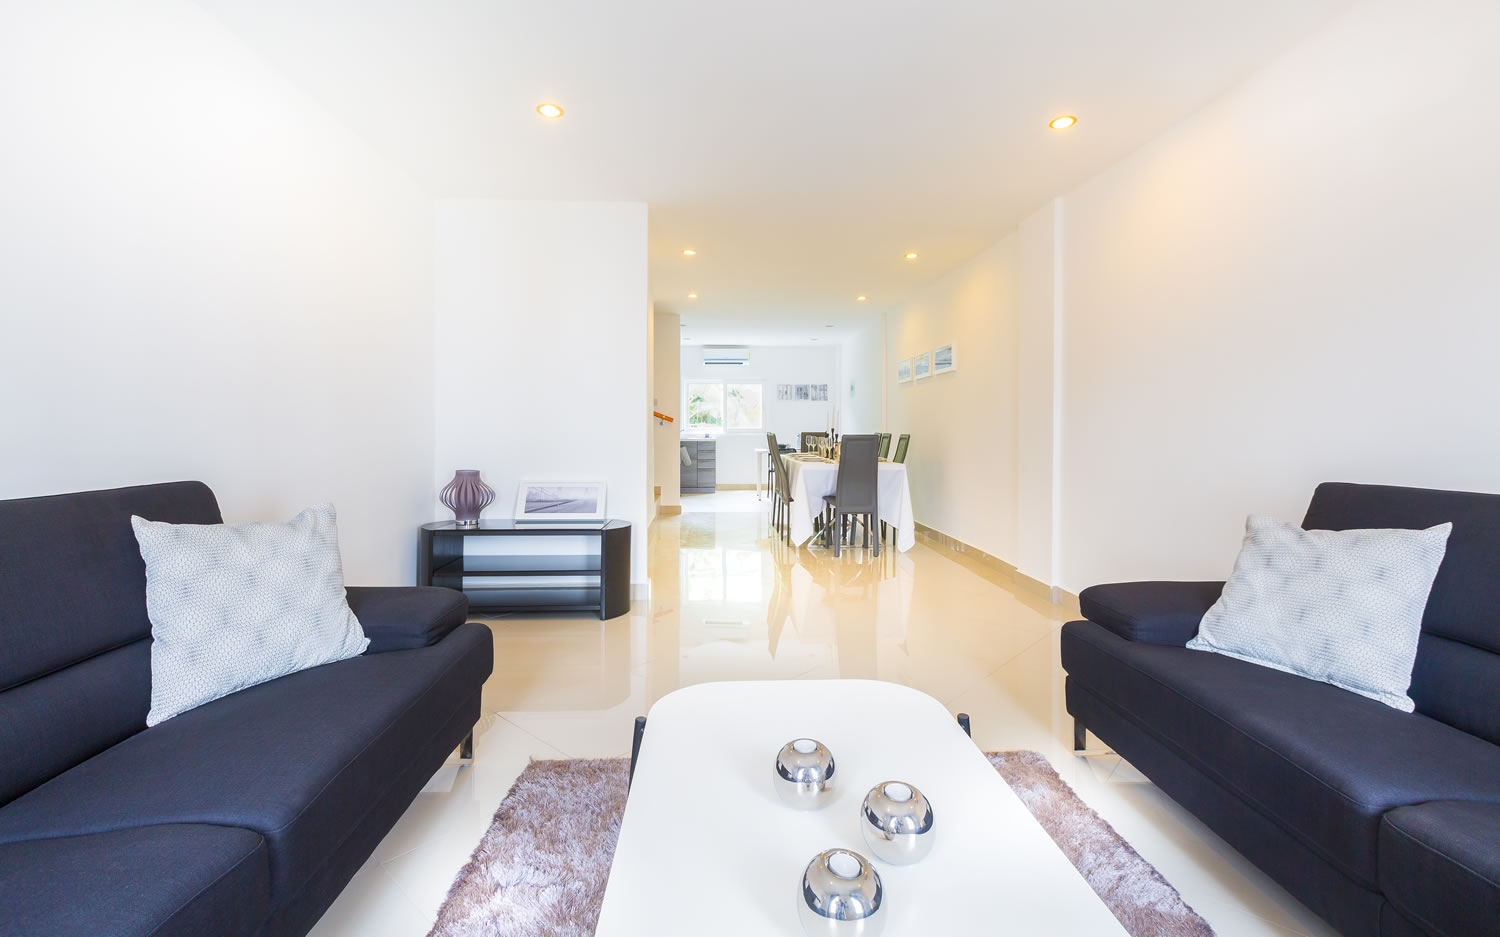 Hot Offer: Kai Villas Townhouse available at $2,000 per month ...